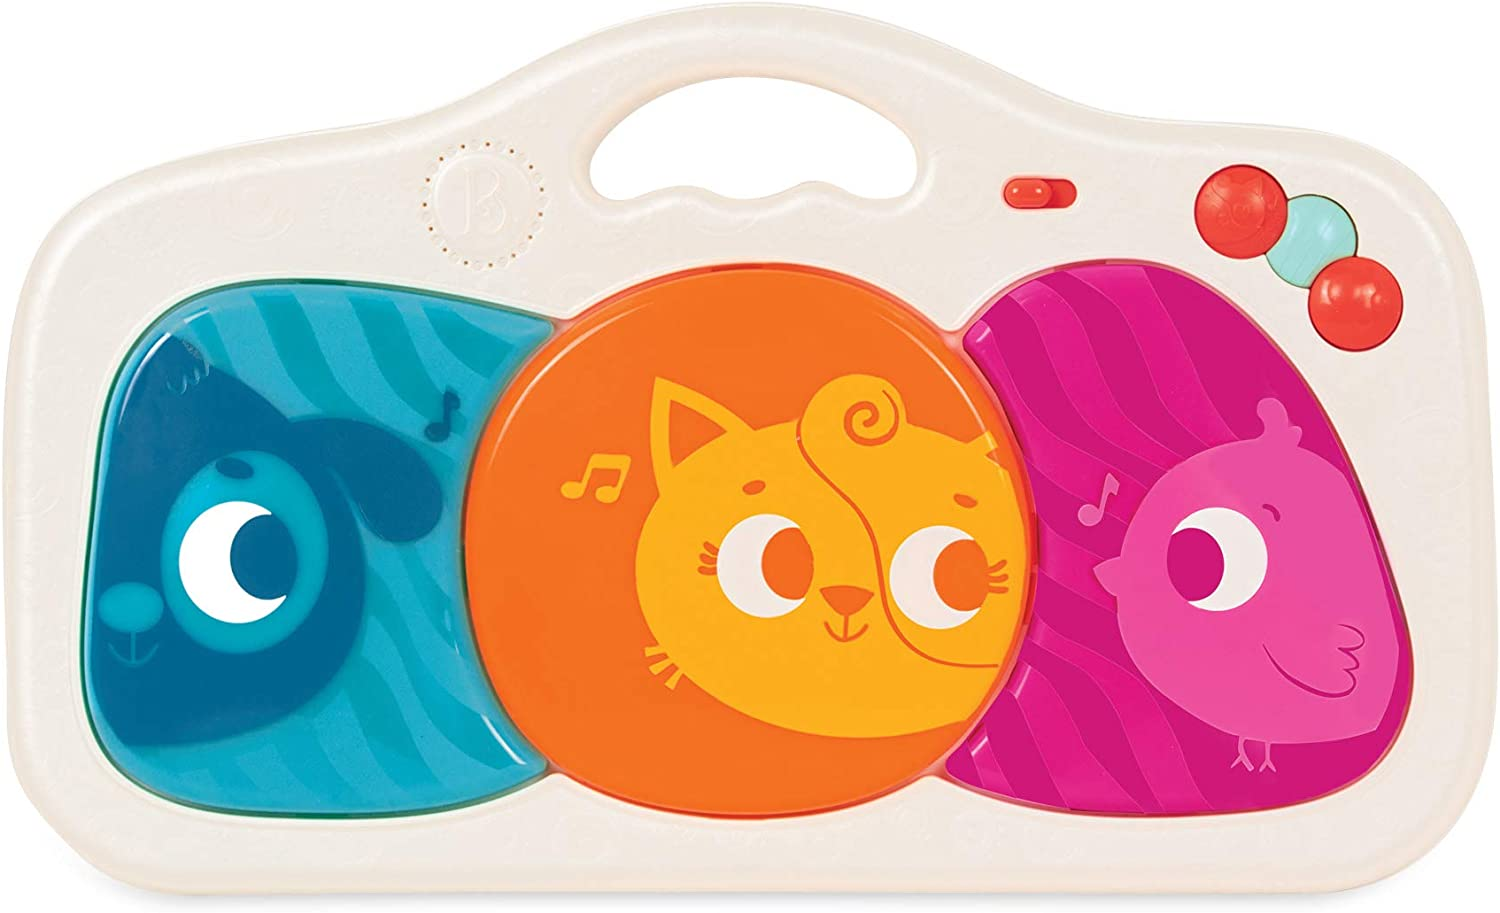 6 Months + Music /& Lights B 6 Songs /& Animal Sounds Portable Party Pad for Babies Musical Baby Toy 3 Music Modes Kick and Play toys BX1737C6Z Toddlers Press